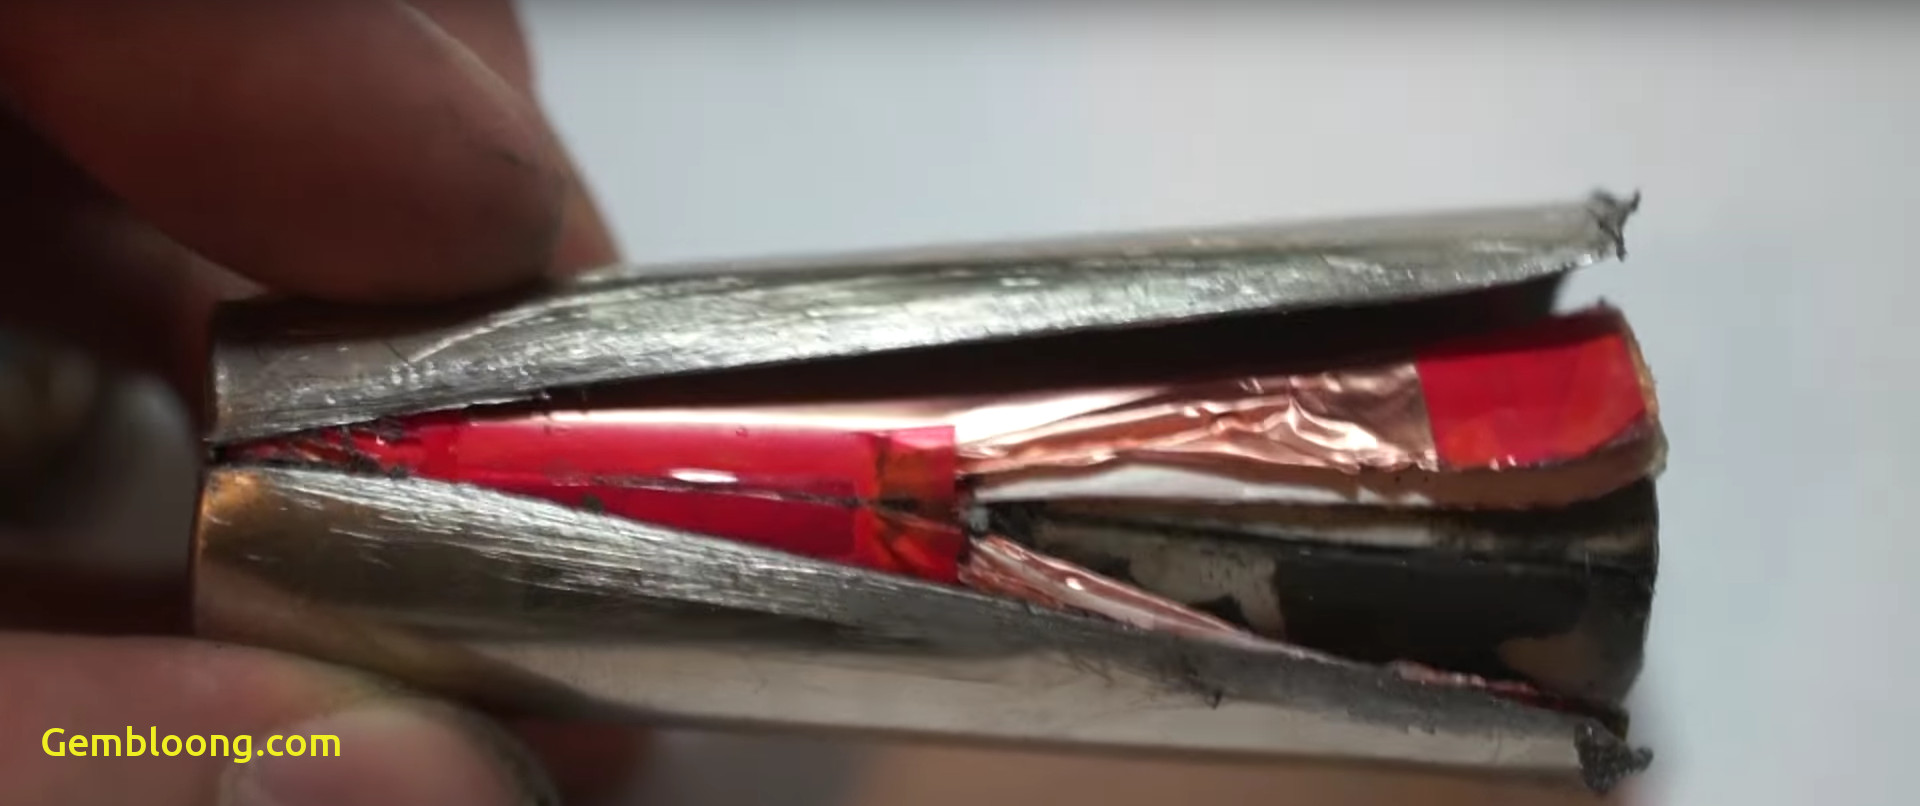 Tesla Battery Cell Inspirational Tesla Battery Cell Breakdown Shows What is Inside and